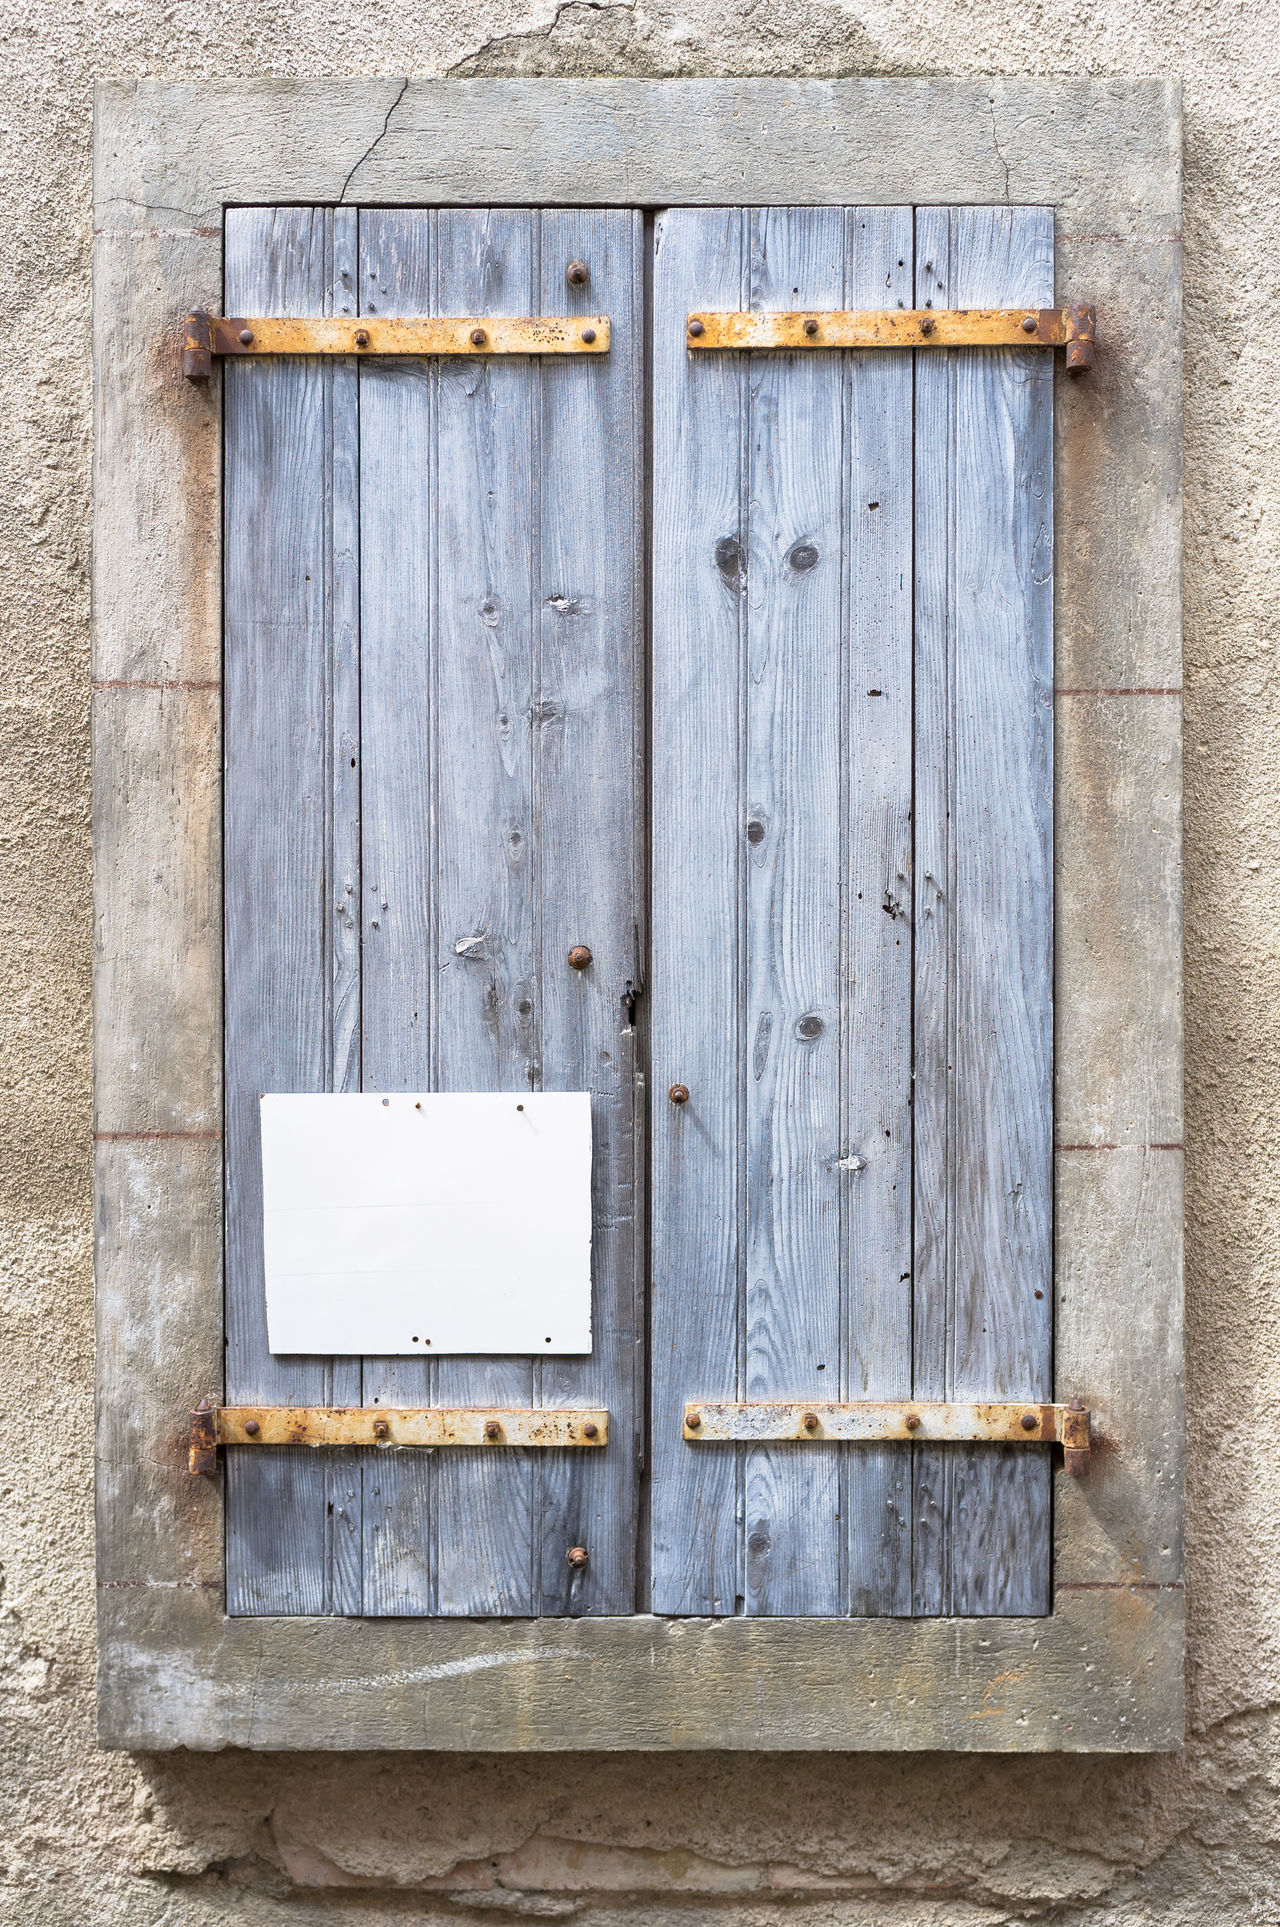 Architecture Close-up Closed Communication Day Door Languedoc Lapradelle-Puilaurence No People Outdoors Southern France Urban Decay Urban Fragments Urban Geometry Urban Landscape Urbanphotography Wood - Material Shutters Blue Shutters Old Shutters Rustic Style Rustic Building Exterior Blue